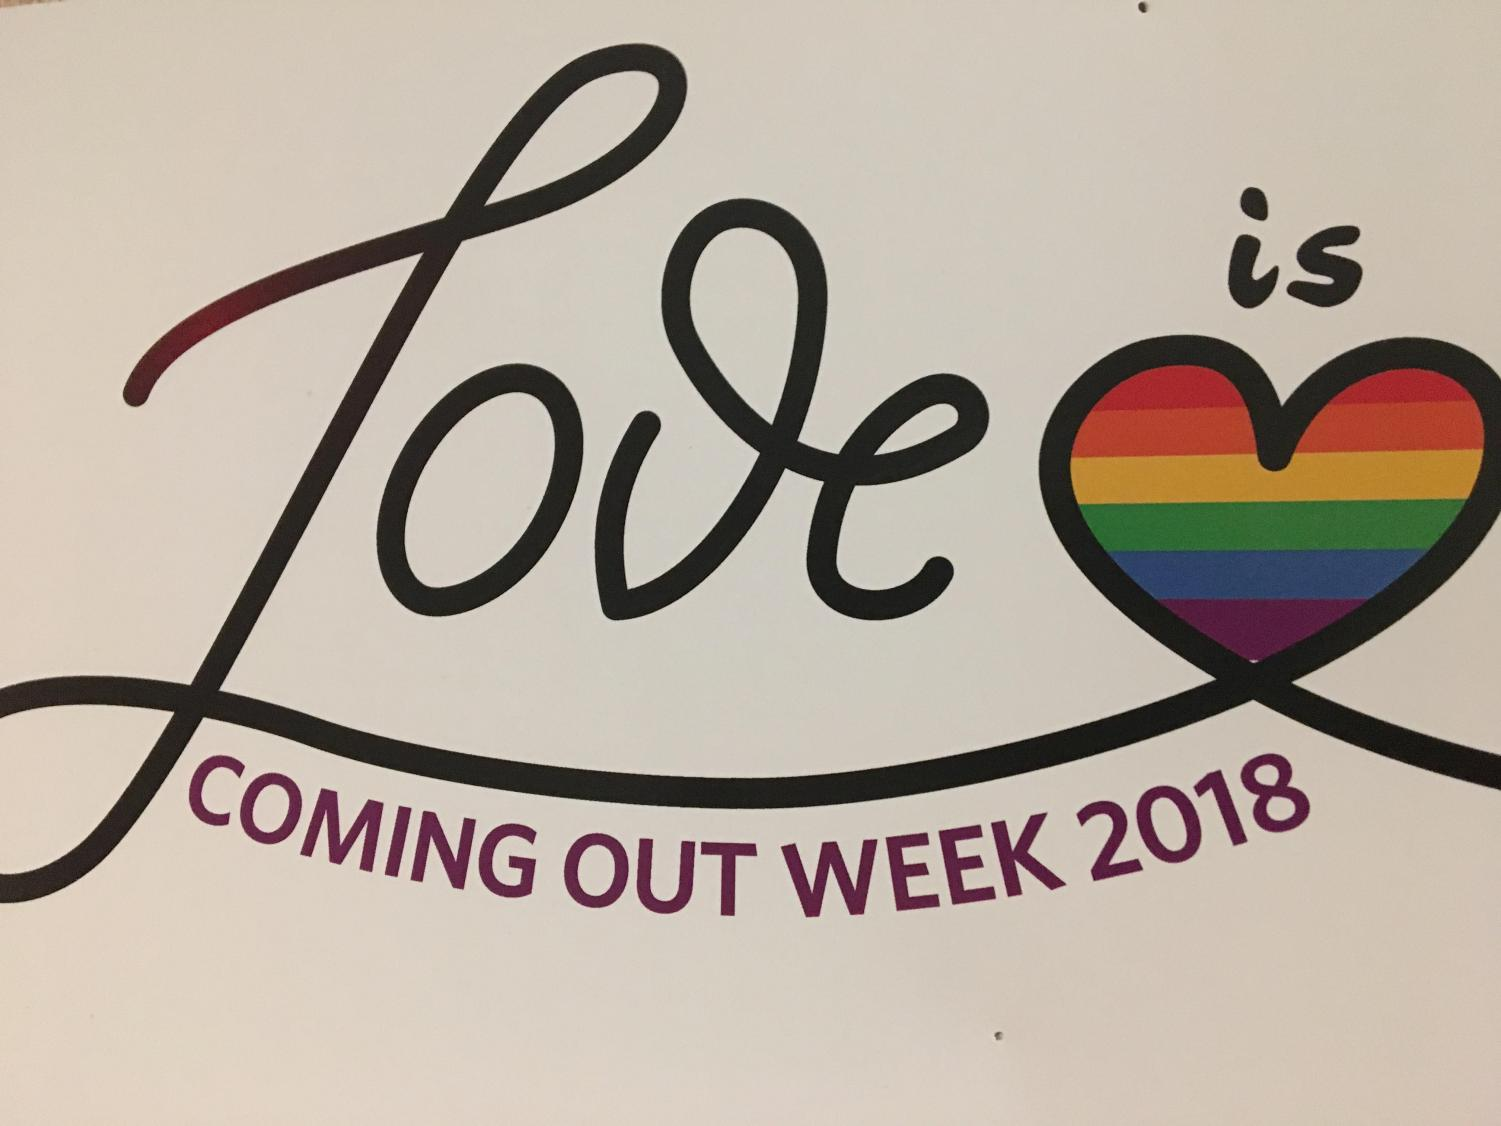 AACC clubs, including Students Out to Destroy Assumptions, the Gay-Straight Alliance and the Campus Activities Board, are hosting October events relating to domestic violence, Halloween and coming out.